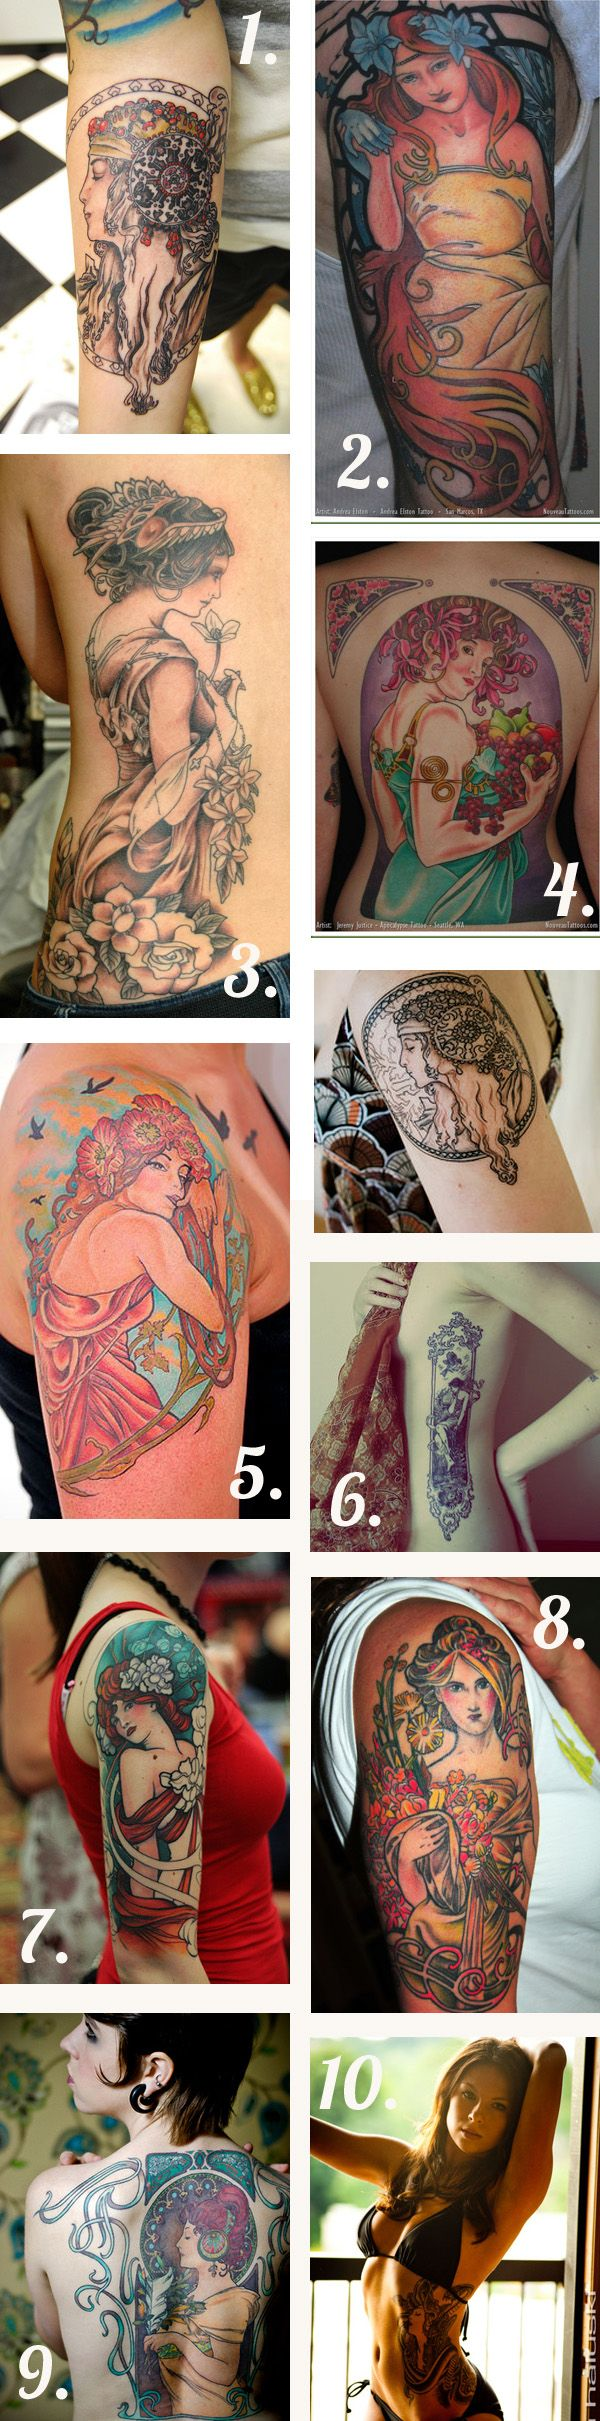 Art Nouveau Tattoo Design By Tegan Ray: Art Nouveau Tattoos! Some Of The Shading On These Is A